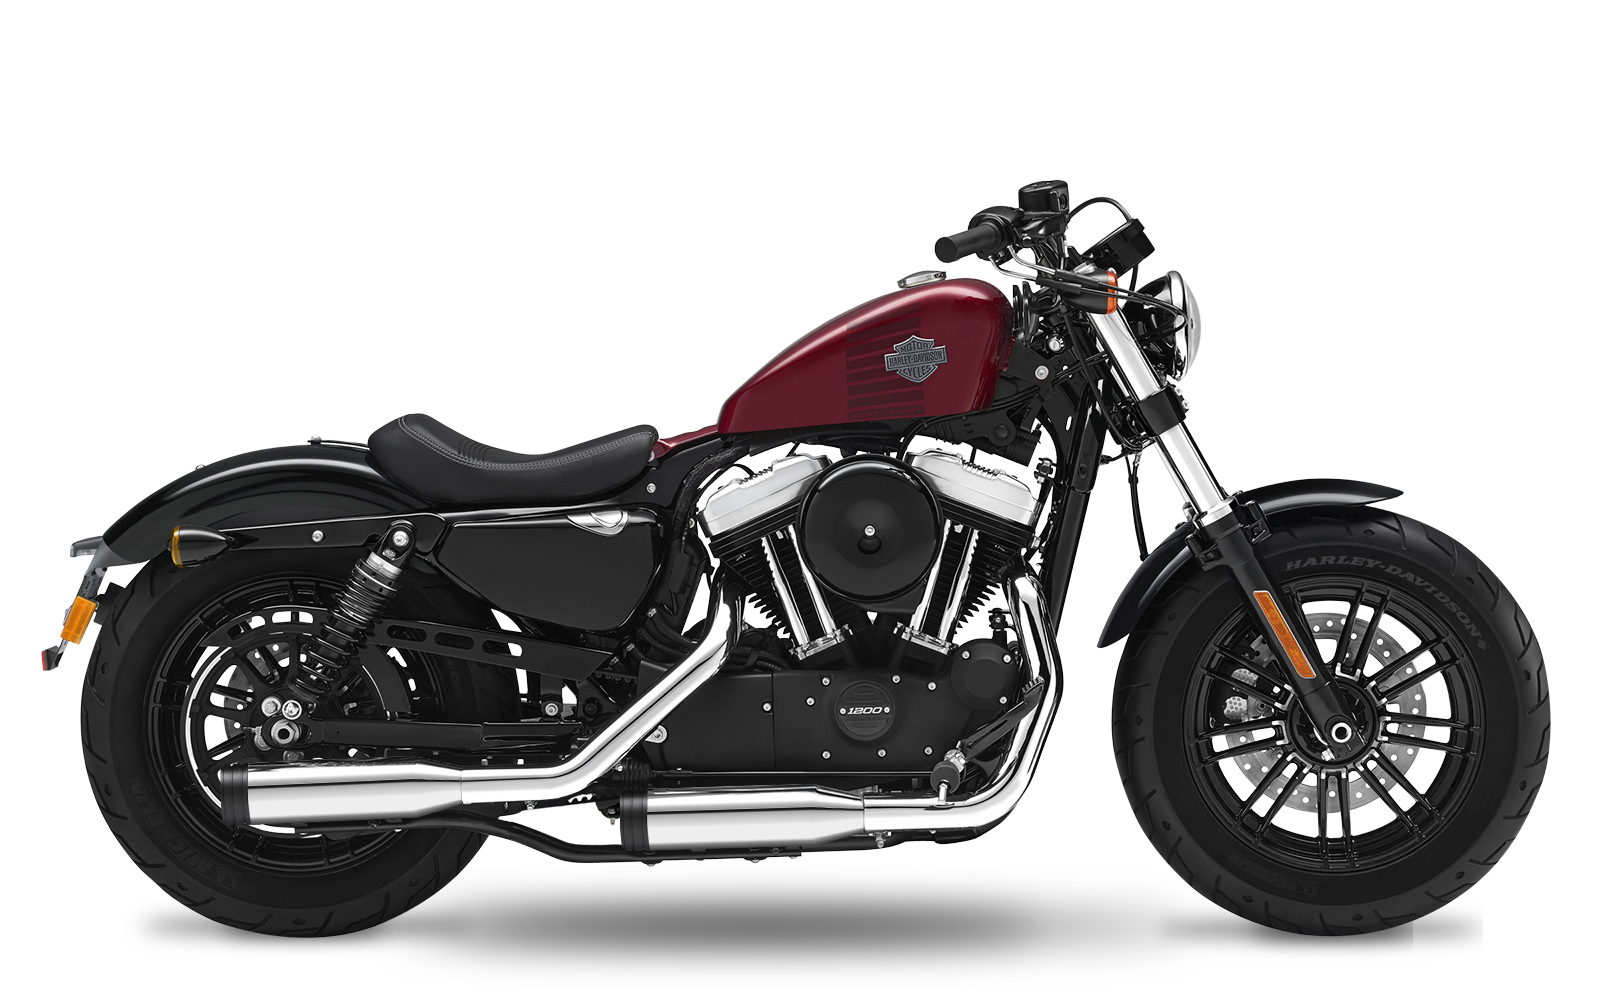 Sportster - Forty-Eight Special - XL - 2018-2020 - Slipons adjustable